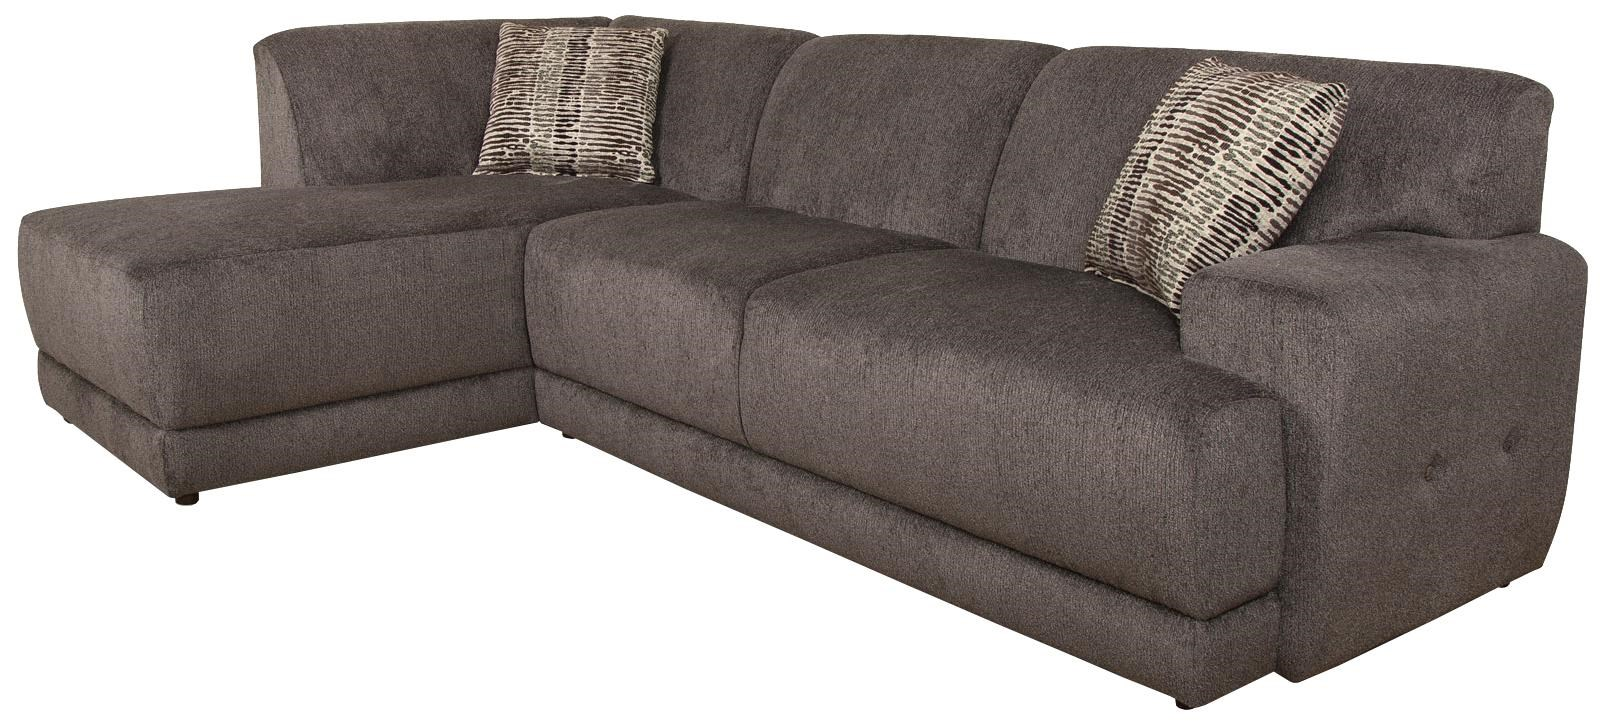 England Cole Contemporary Sectional Sofa with Left Facing  : cole2028802880 0623 b0jpgscalebothampwidth500ampheight500ampfsharpen25ampdown from www.godbyhomefurnishings.com size 500 x 500 jpeg 25kB